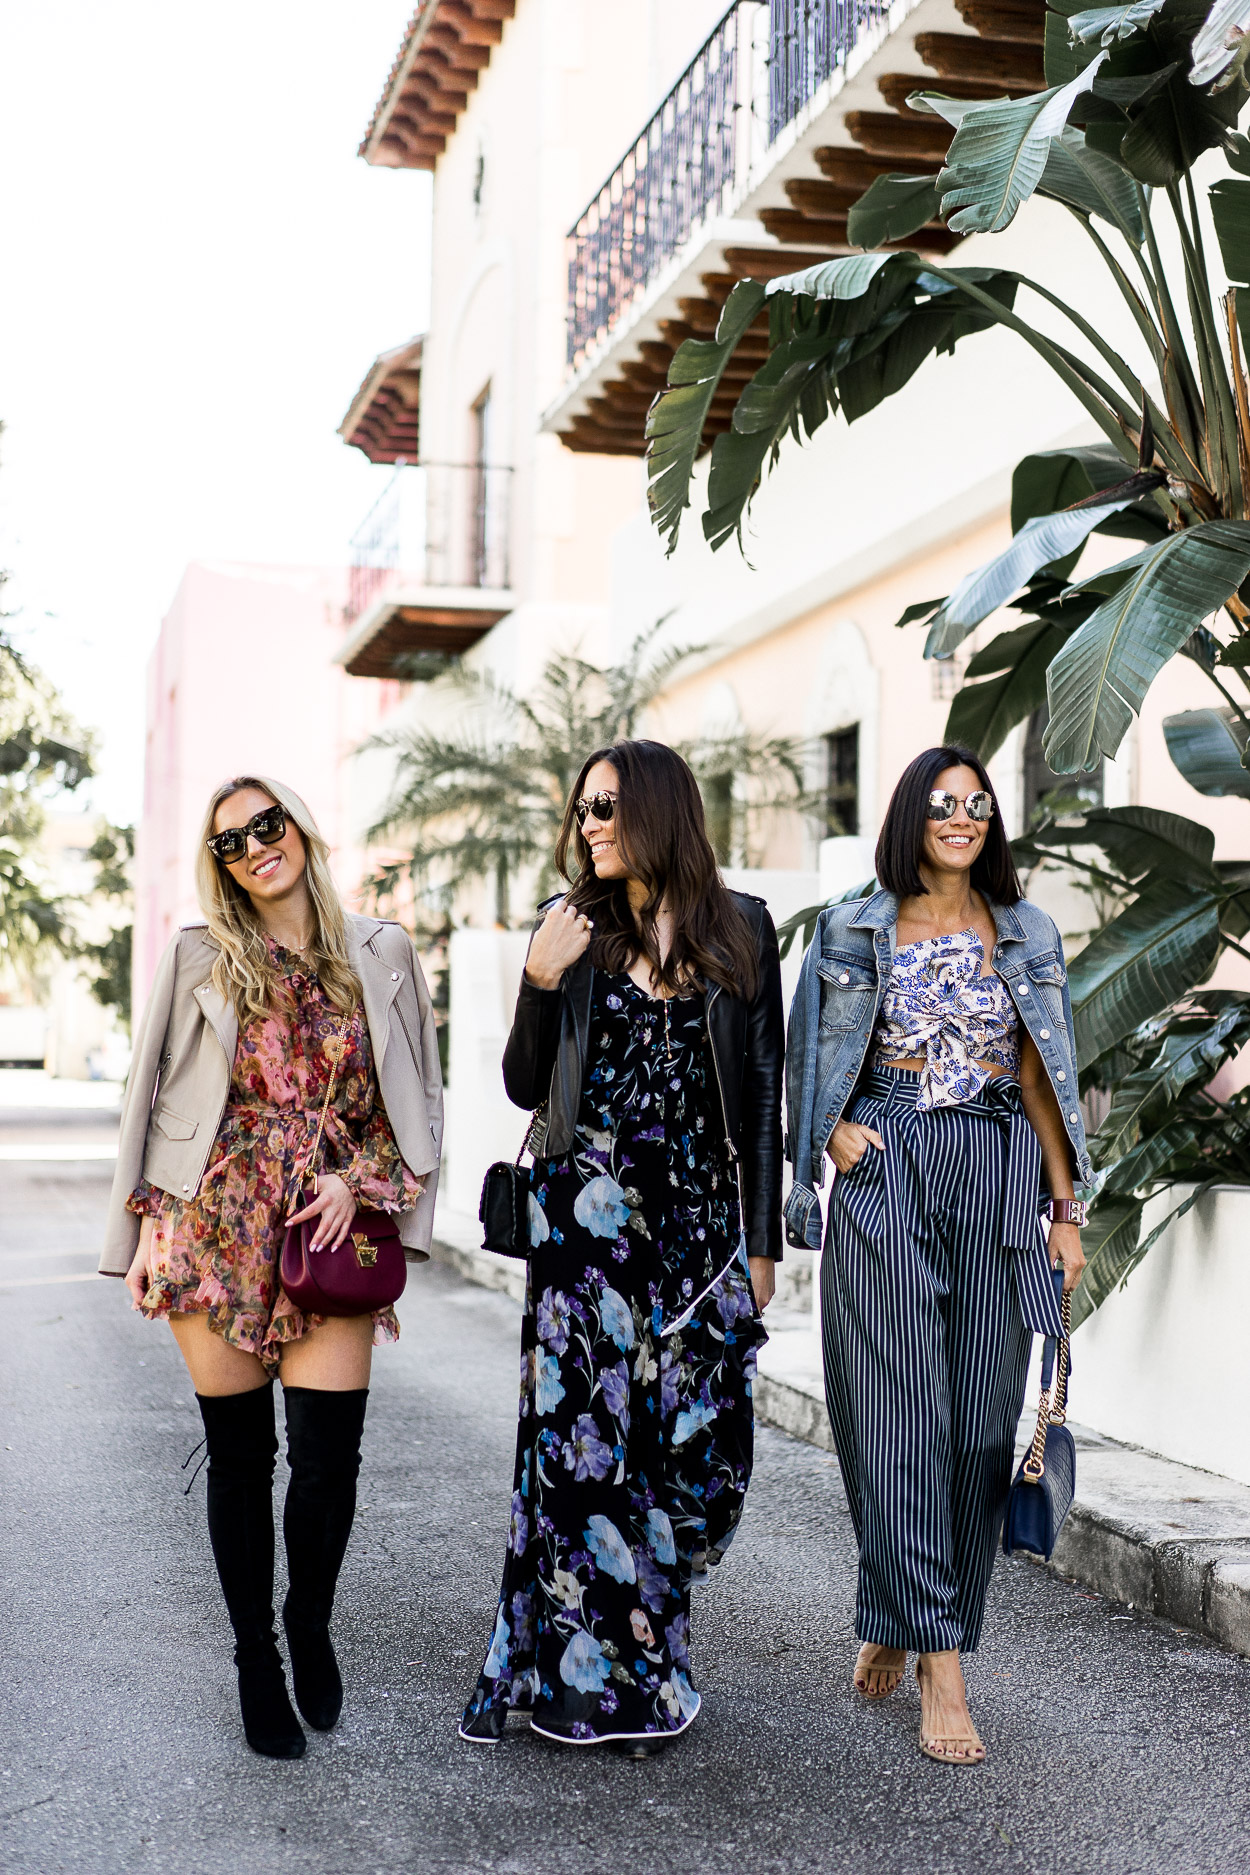 Blogger brunch outfits are always on point, like Get On My Chic, A Glam Lifestyle and Sauci Style bloggers in Fort Lauderdale